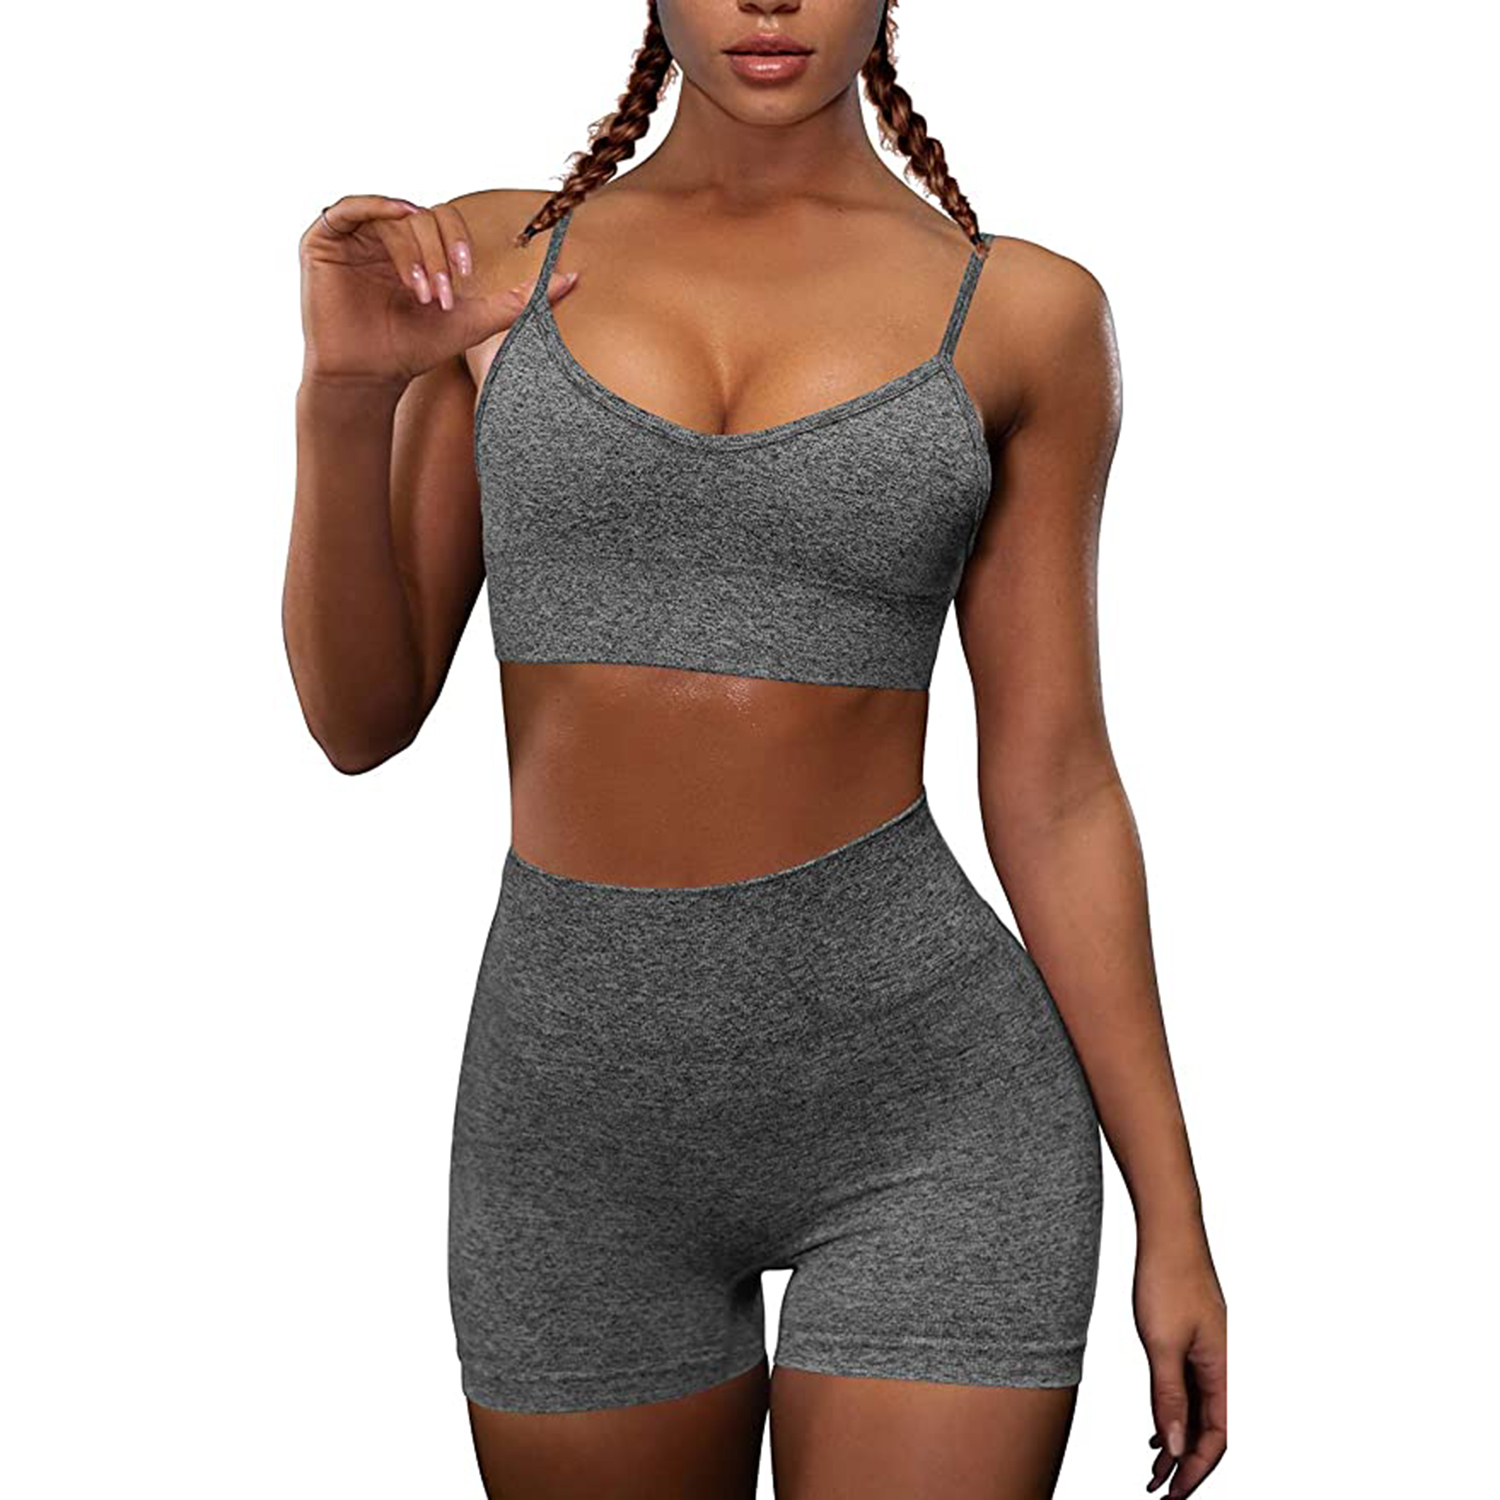 OQQ Yoga Outfit for Women Seamless 2 Piece Workout Gym High Waist Leggings with Sport Bra Set